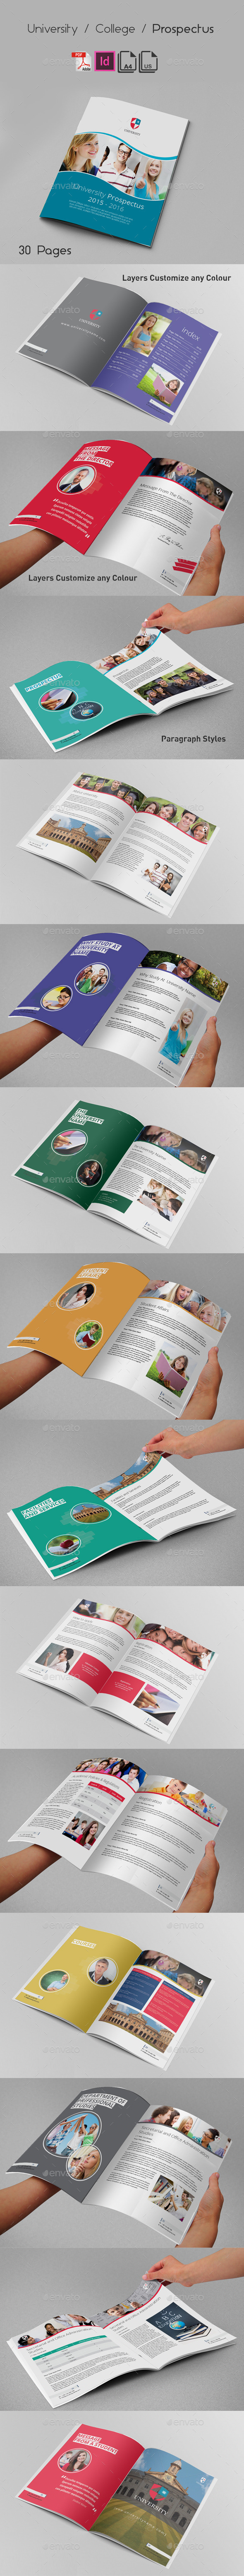 University College Prospectus - Brochures Print Templates